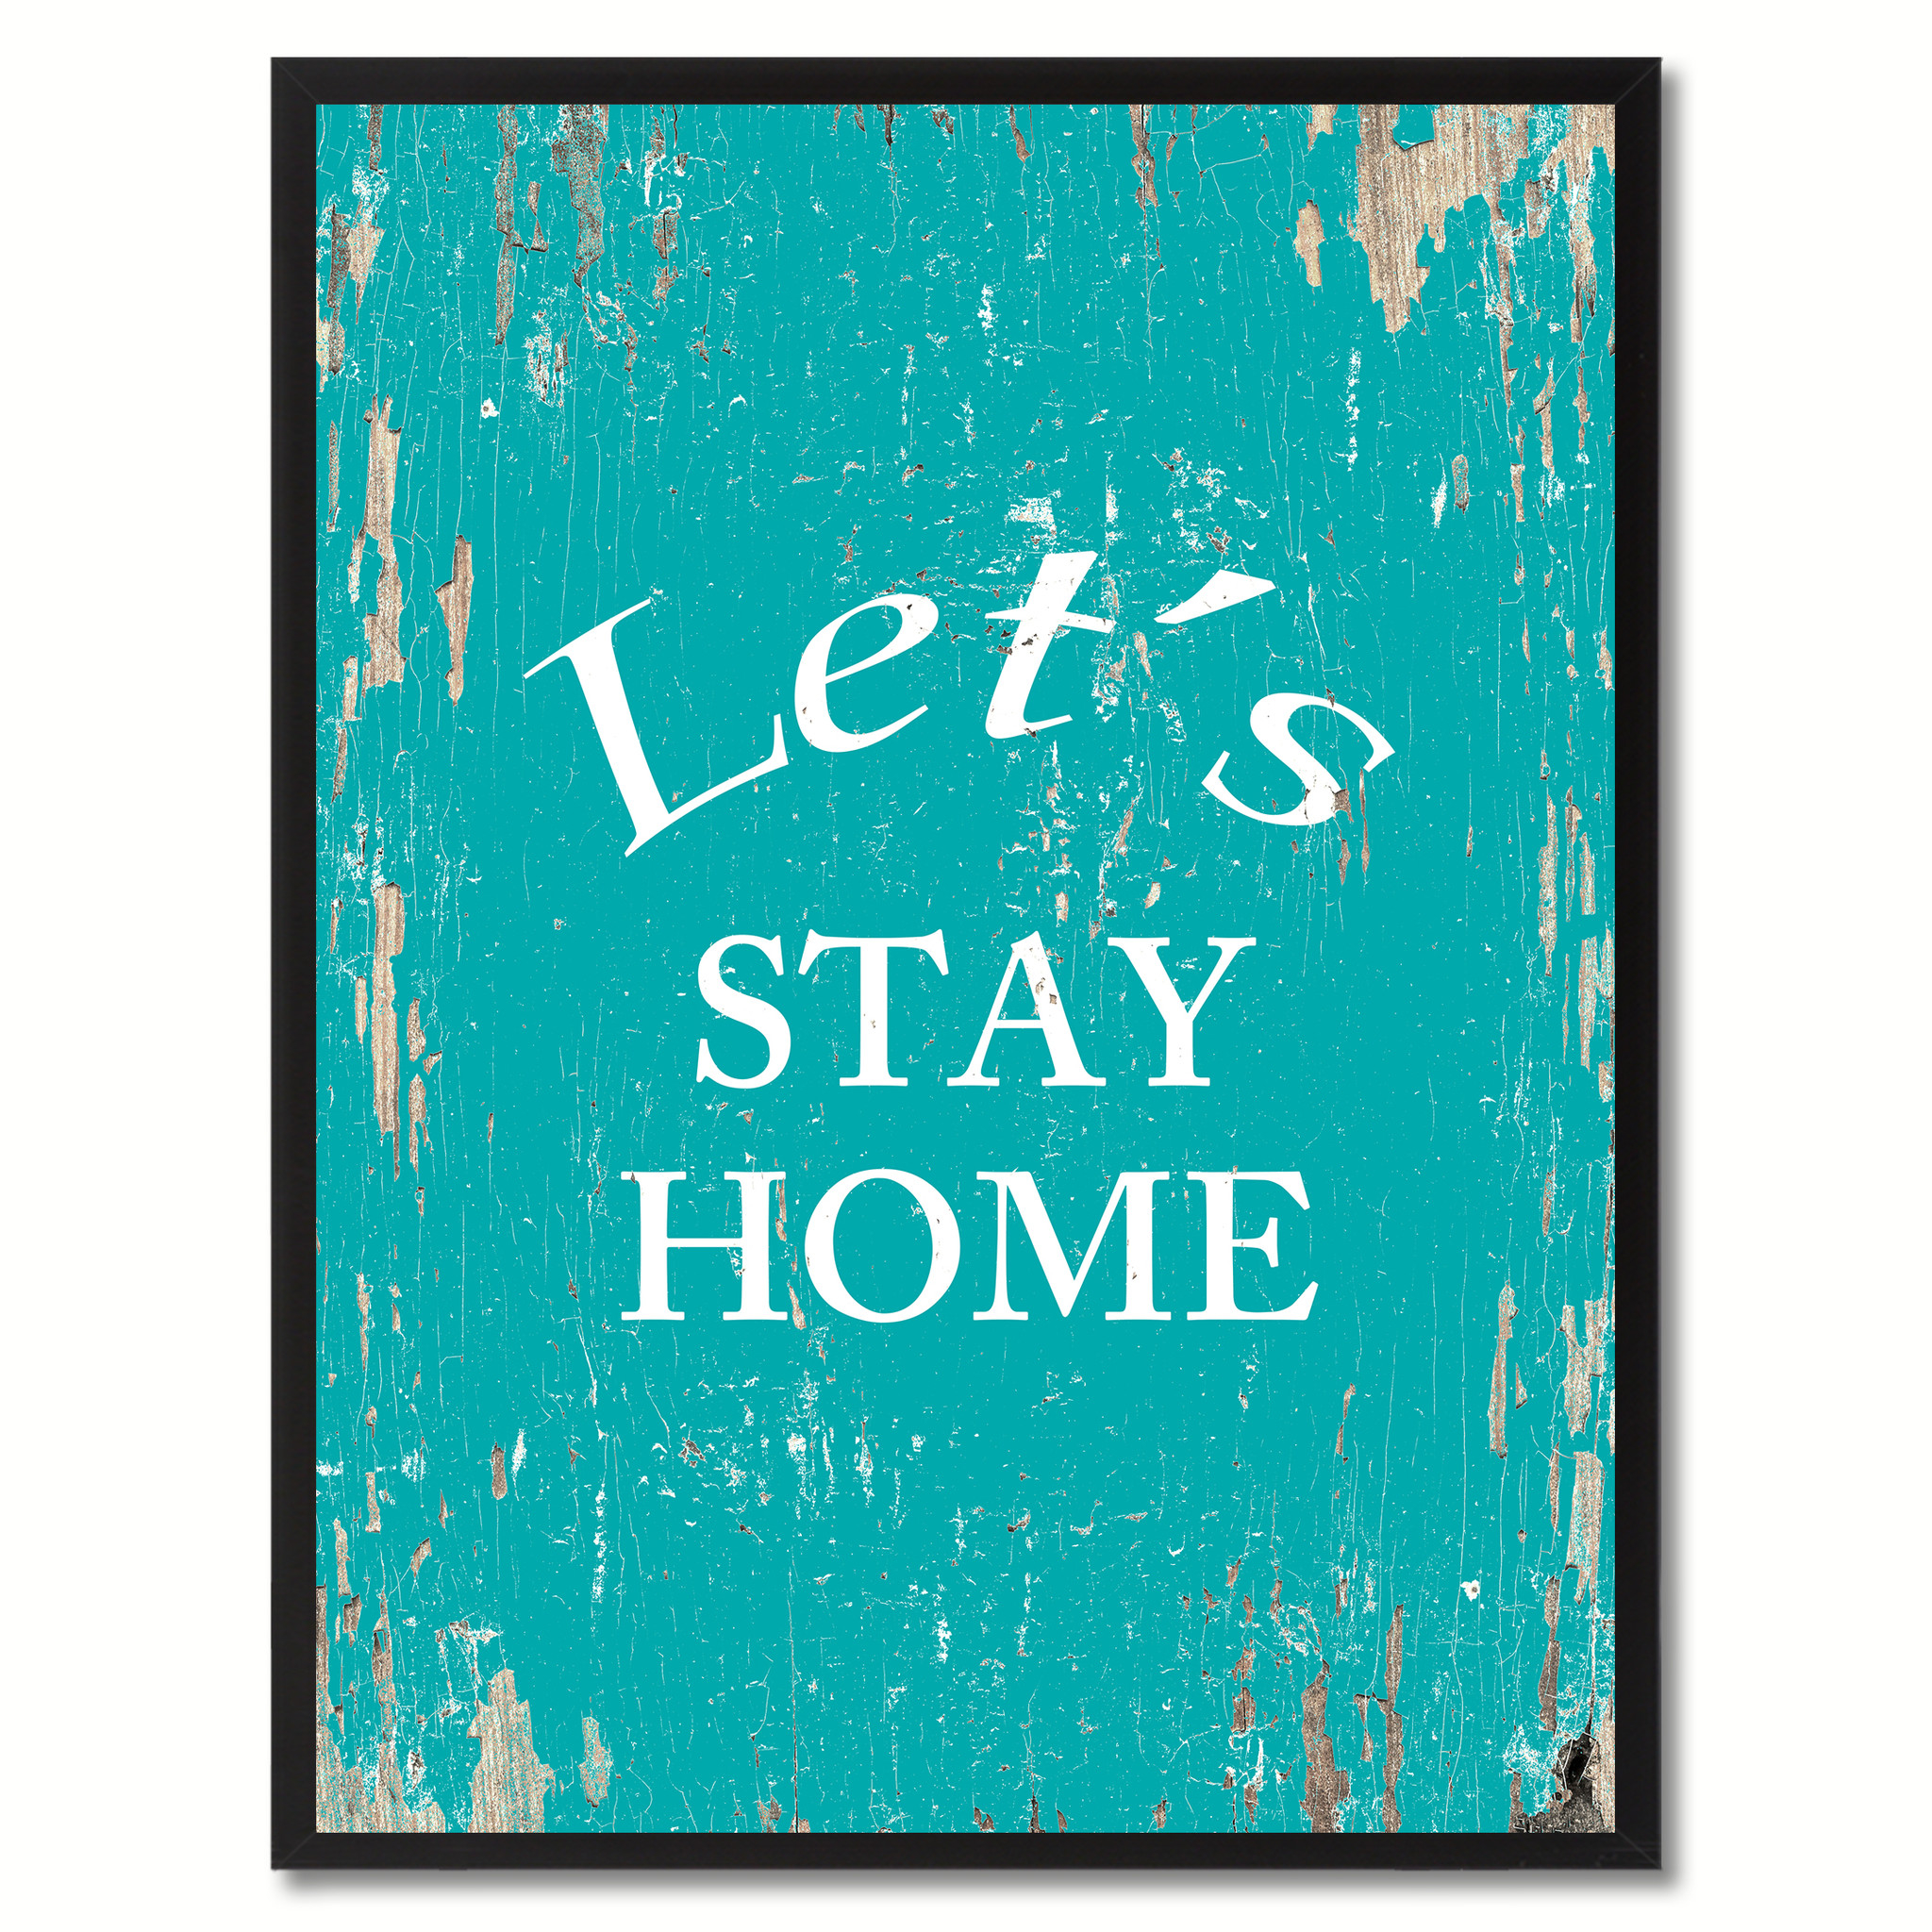 "Let's Stay Home Saying Canvas Print, Black Picture Frame Home Decor Wall Art Gifts - 7""x9\"""